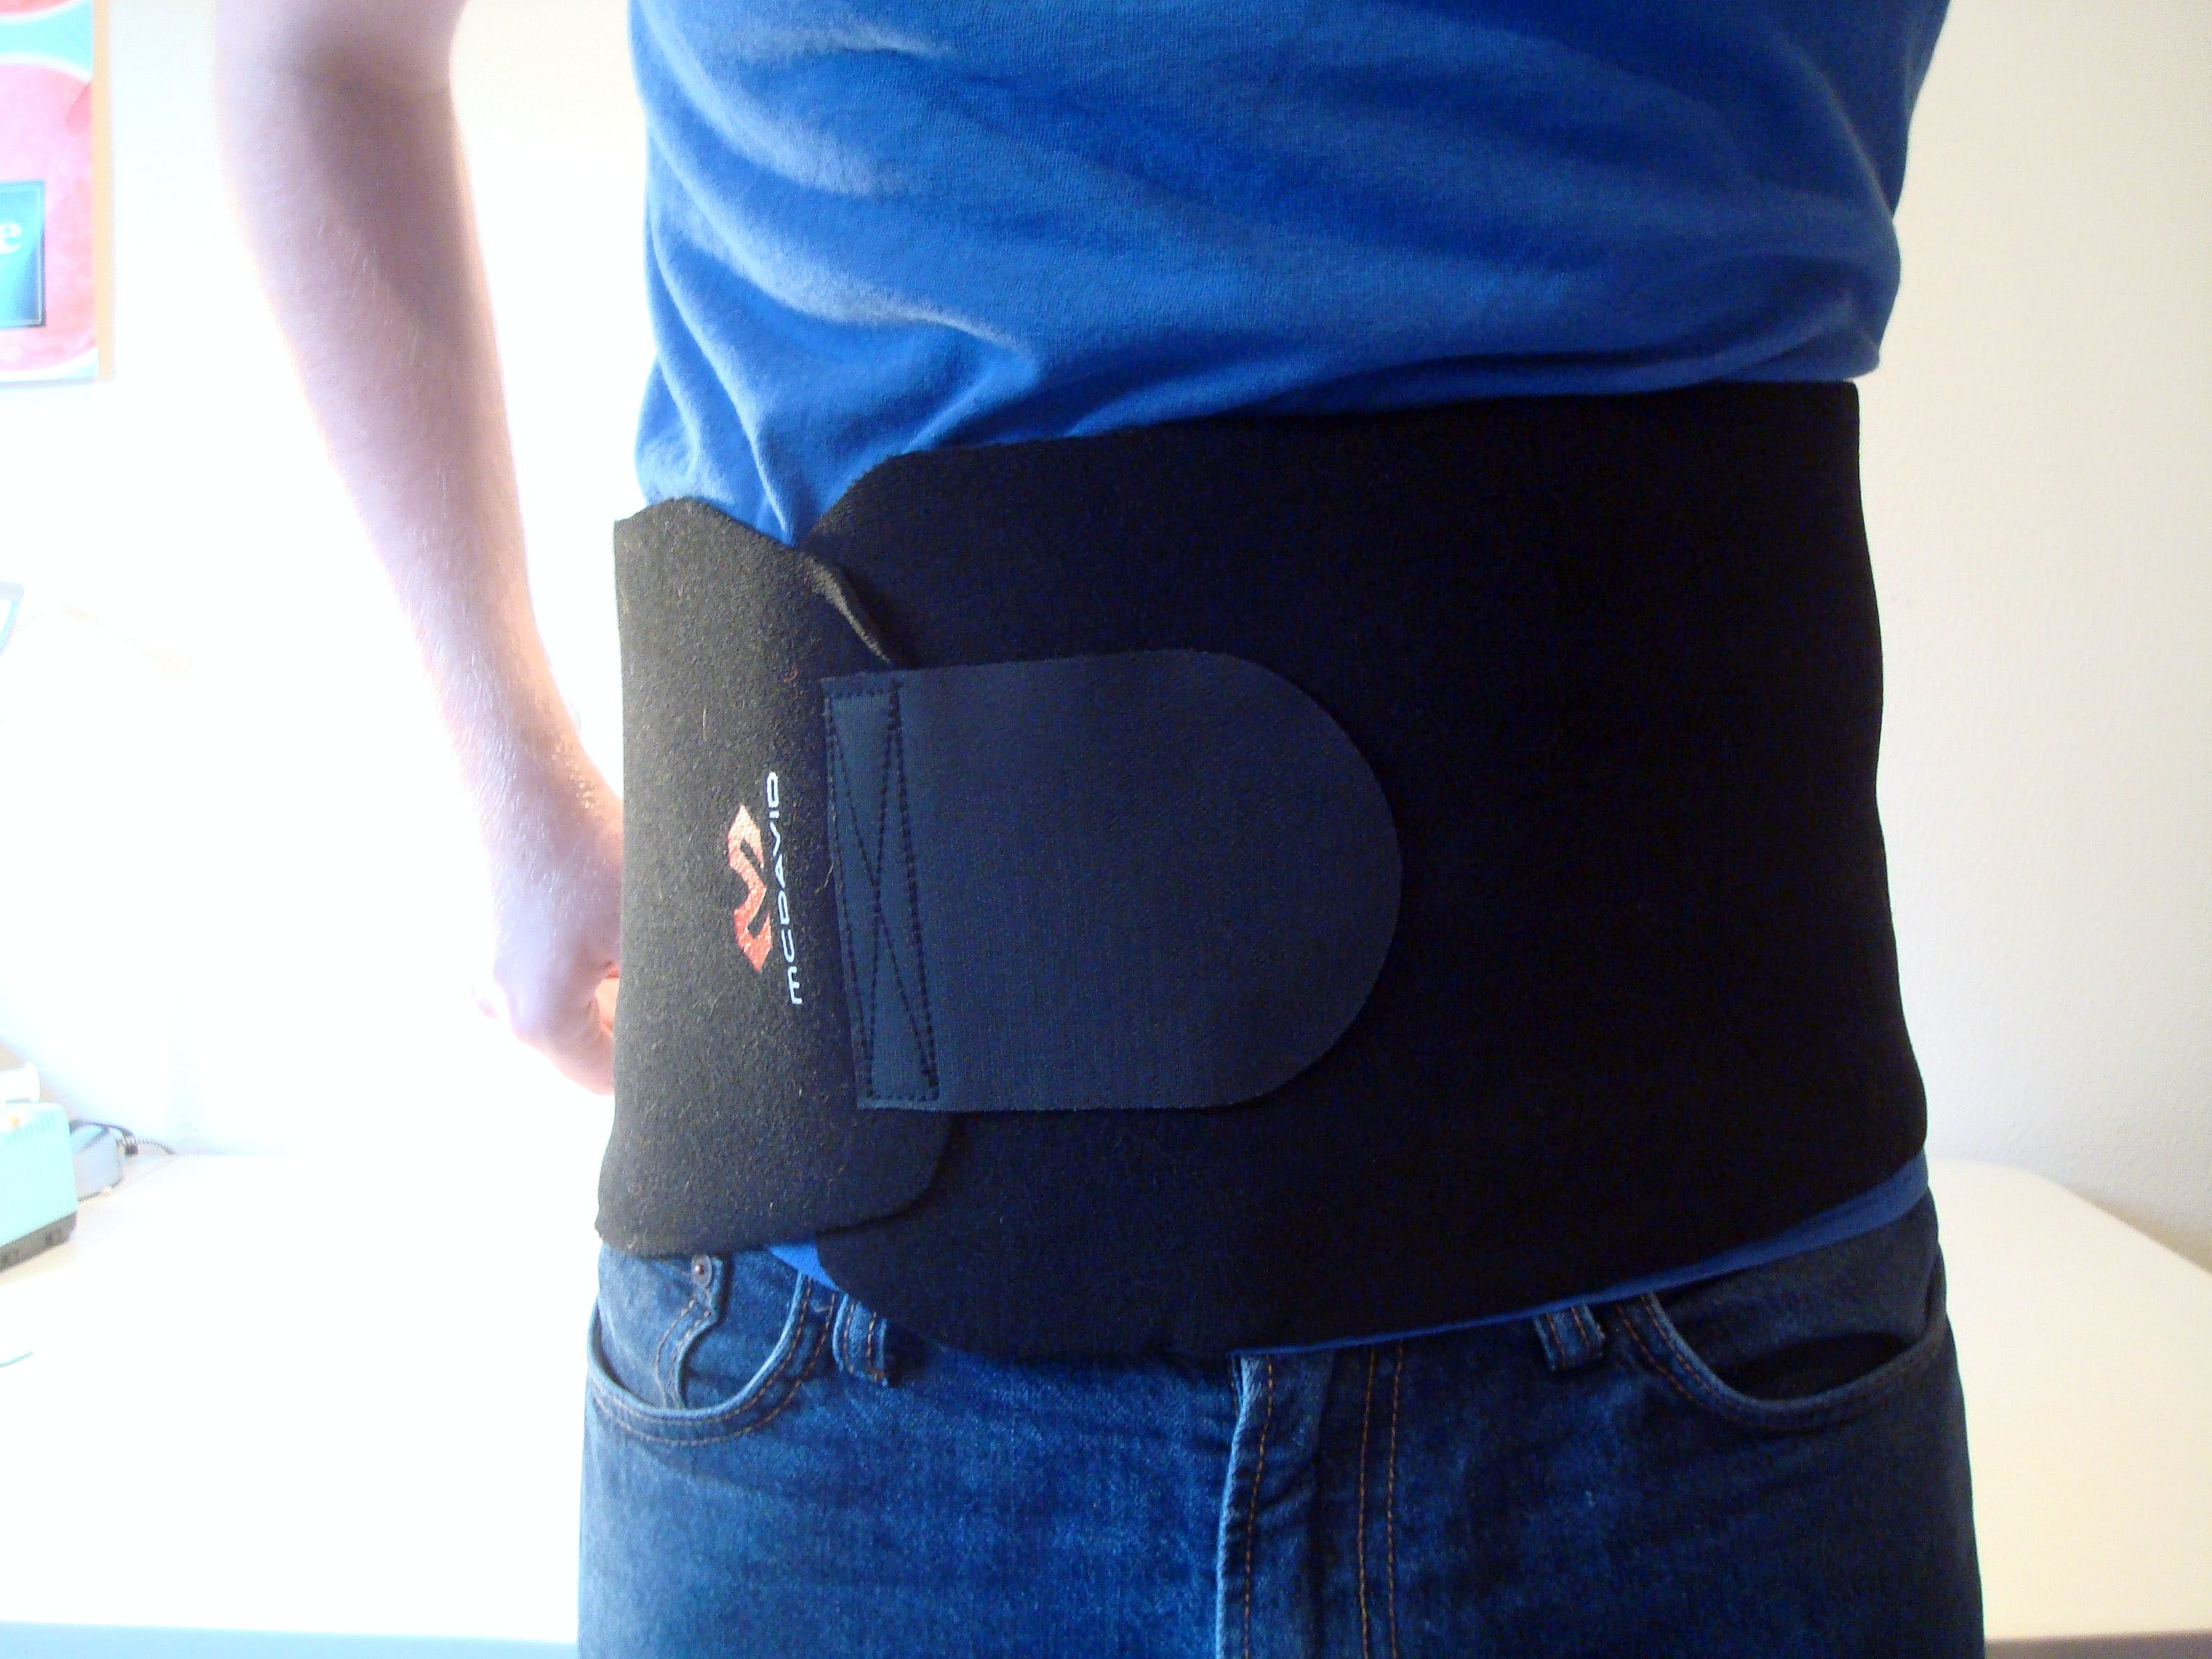 To start, we need to figure out the placement of the tactors facing the cardinal directions. Put on the belt with the attachment velcro covering your front.